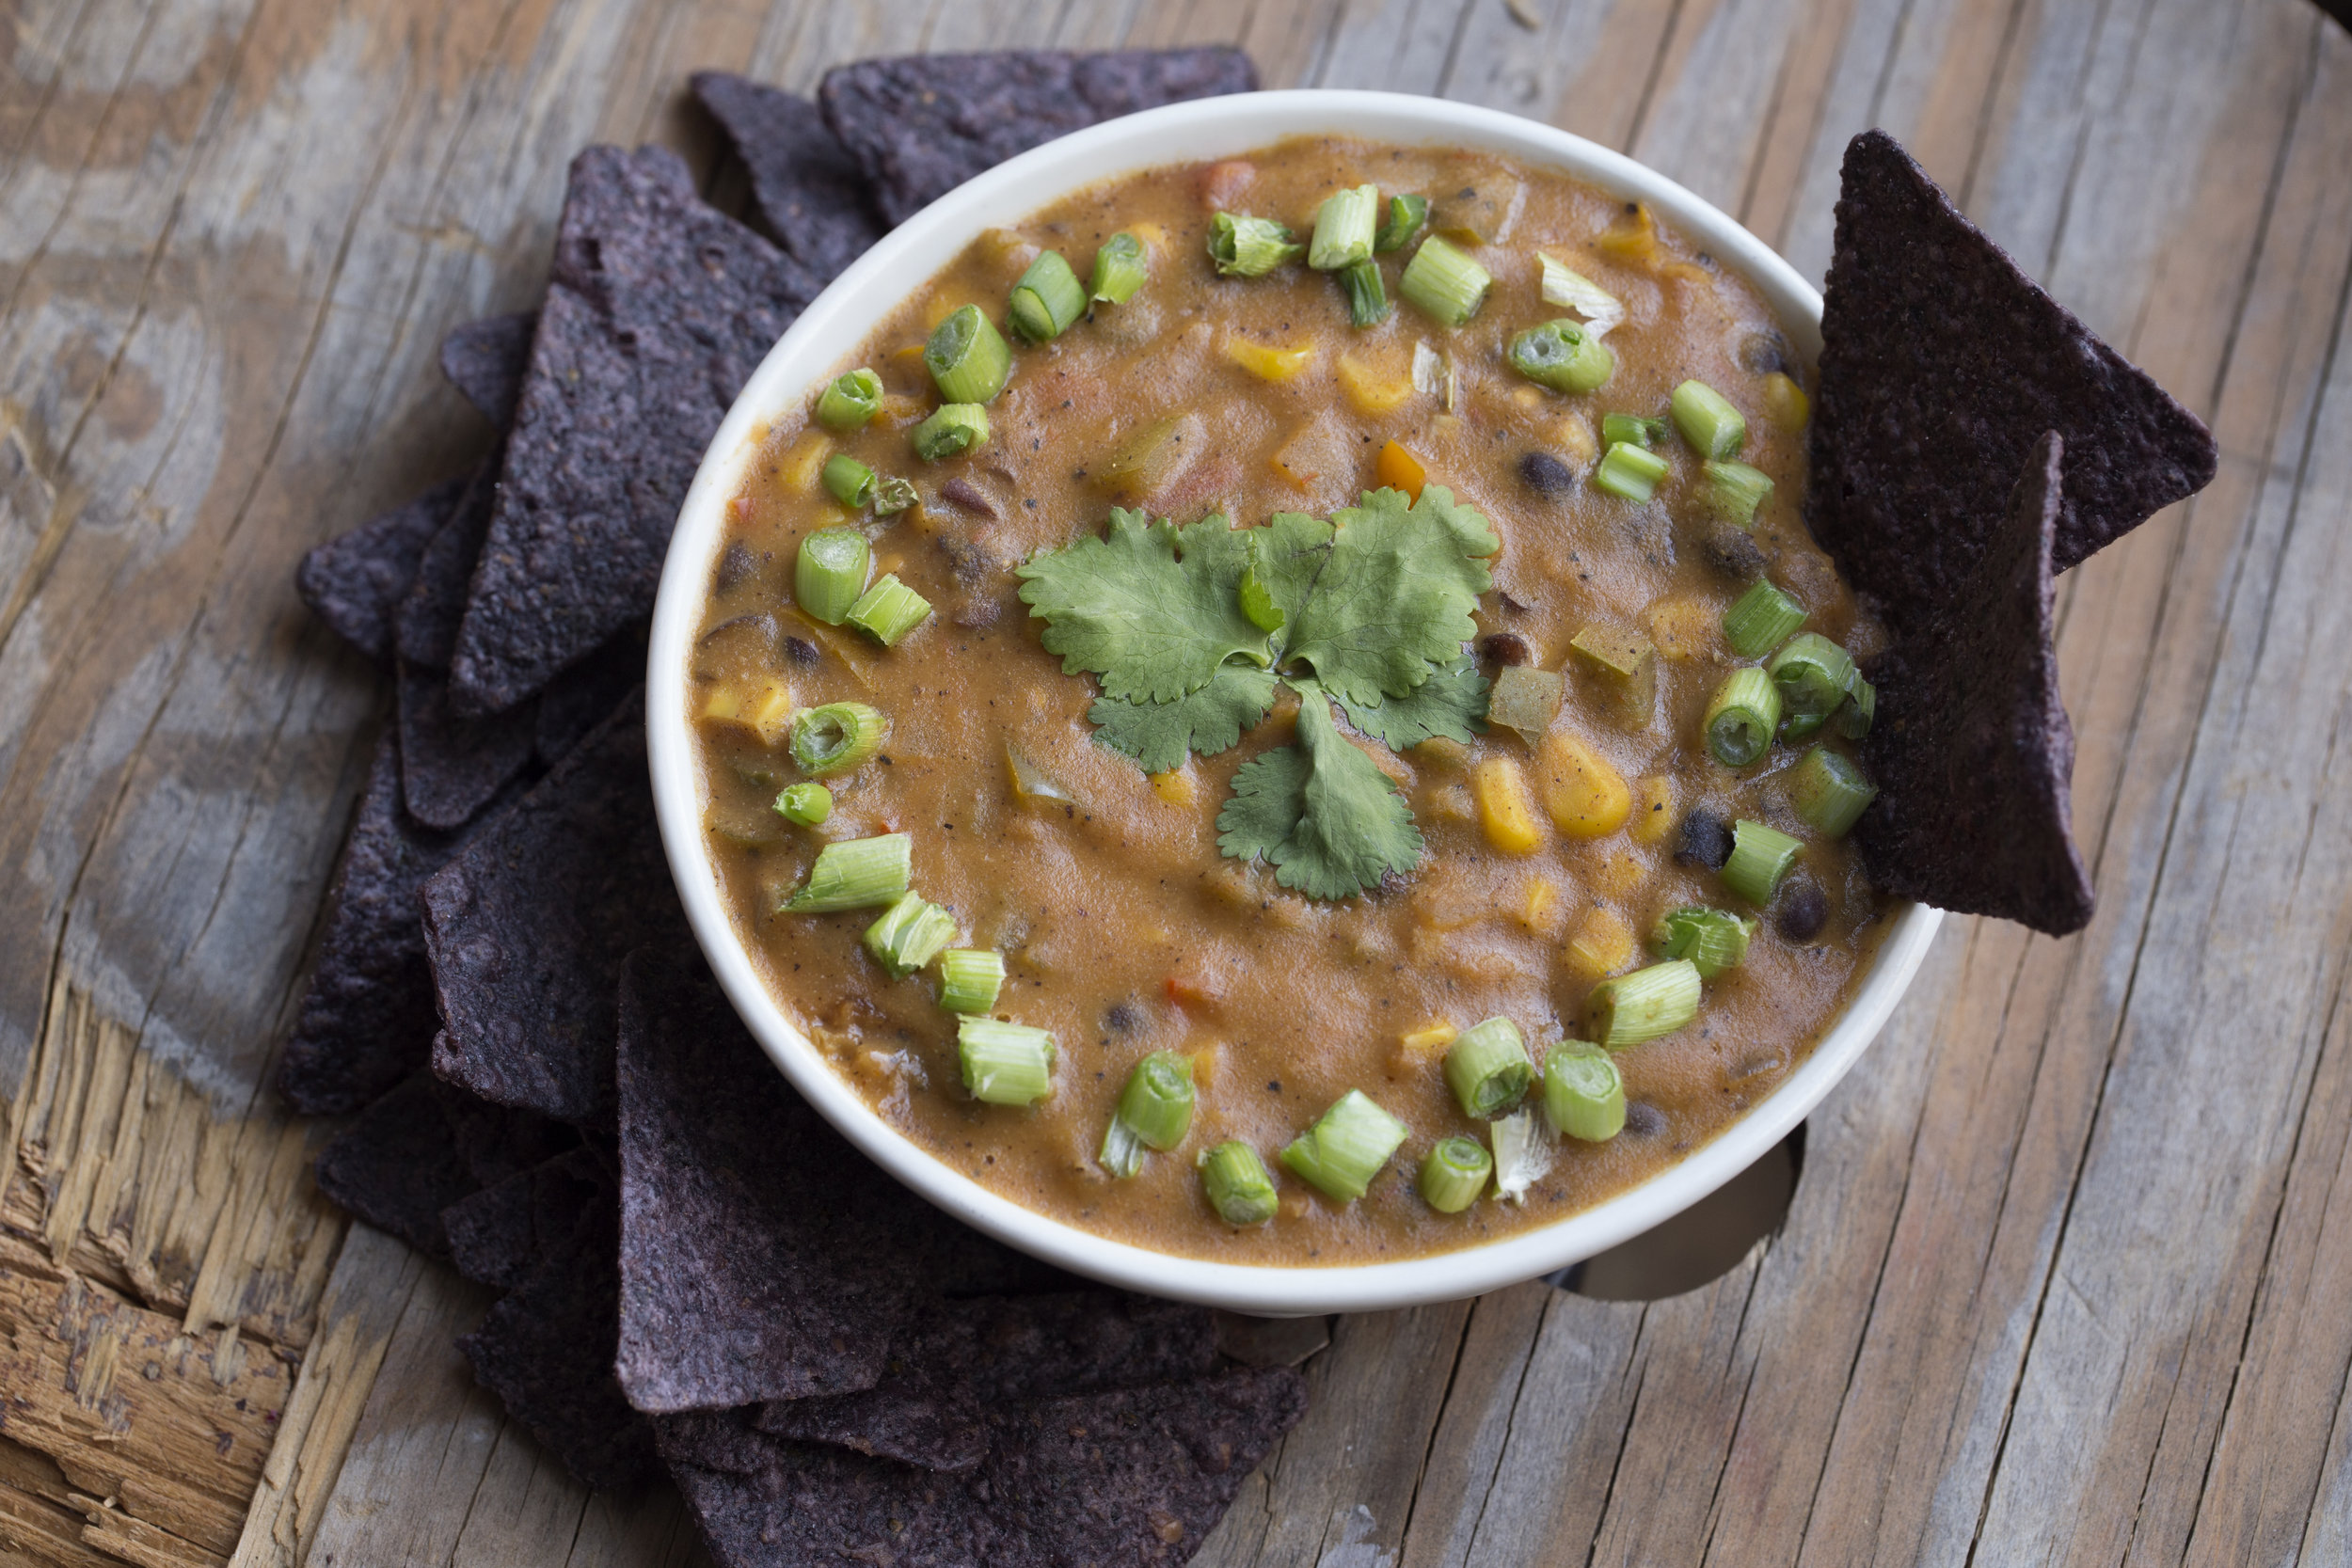 spicy vegan chili cheese dip perfect for family gatherings where you   know   there won't be any veggie options.